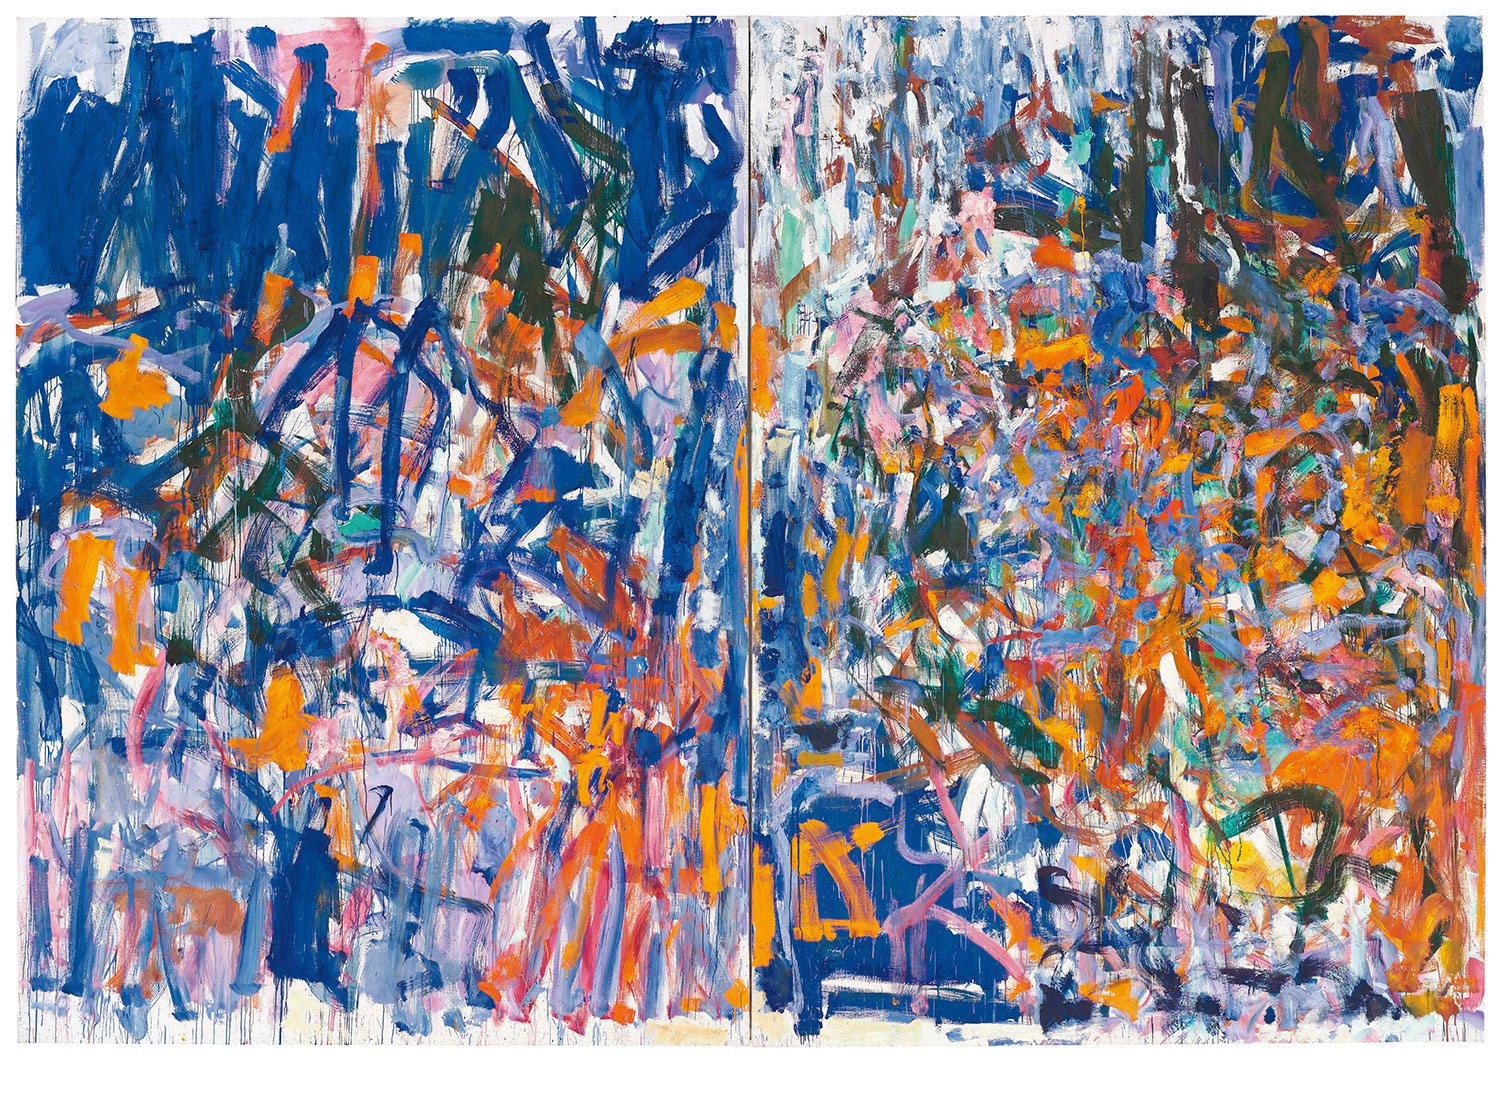 An abstract diptych painting dominated by blue, orange and pink brushstrokes.